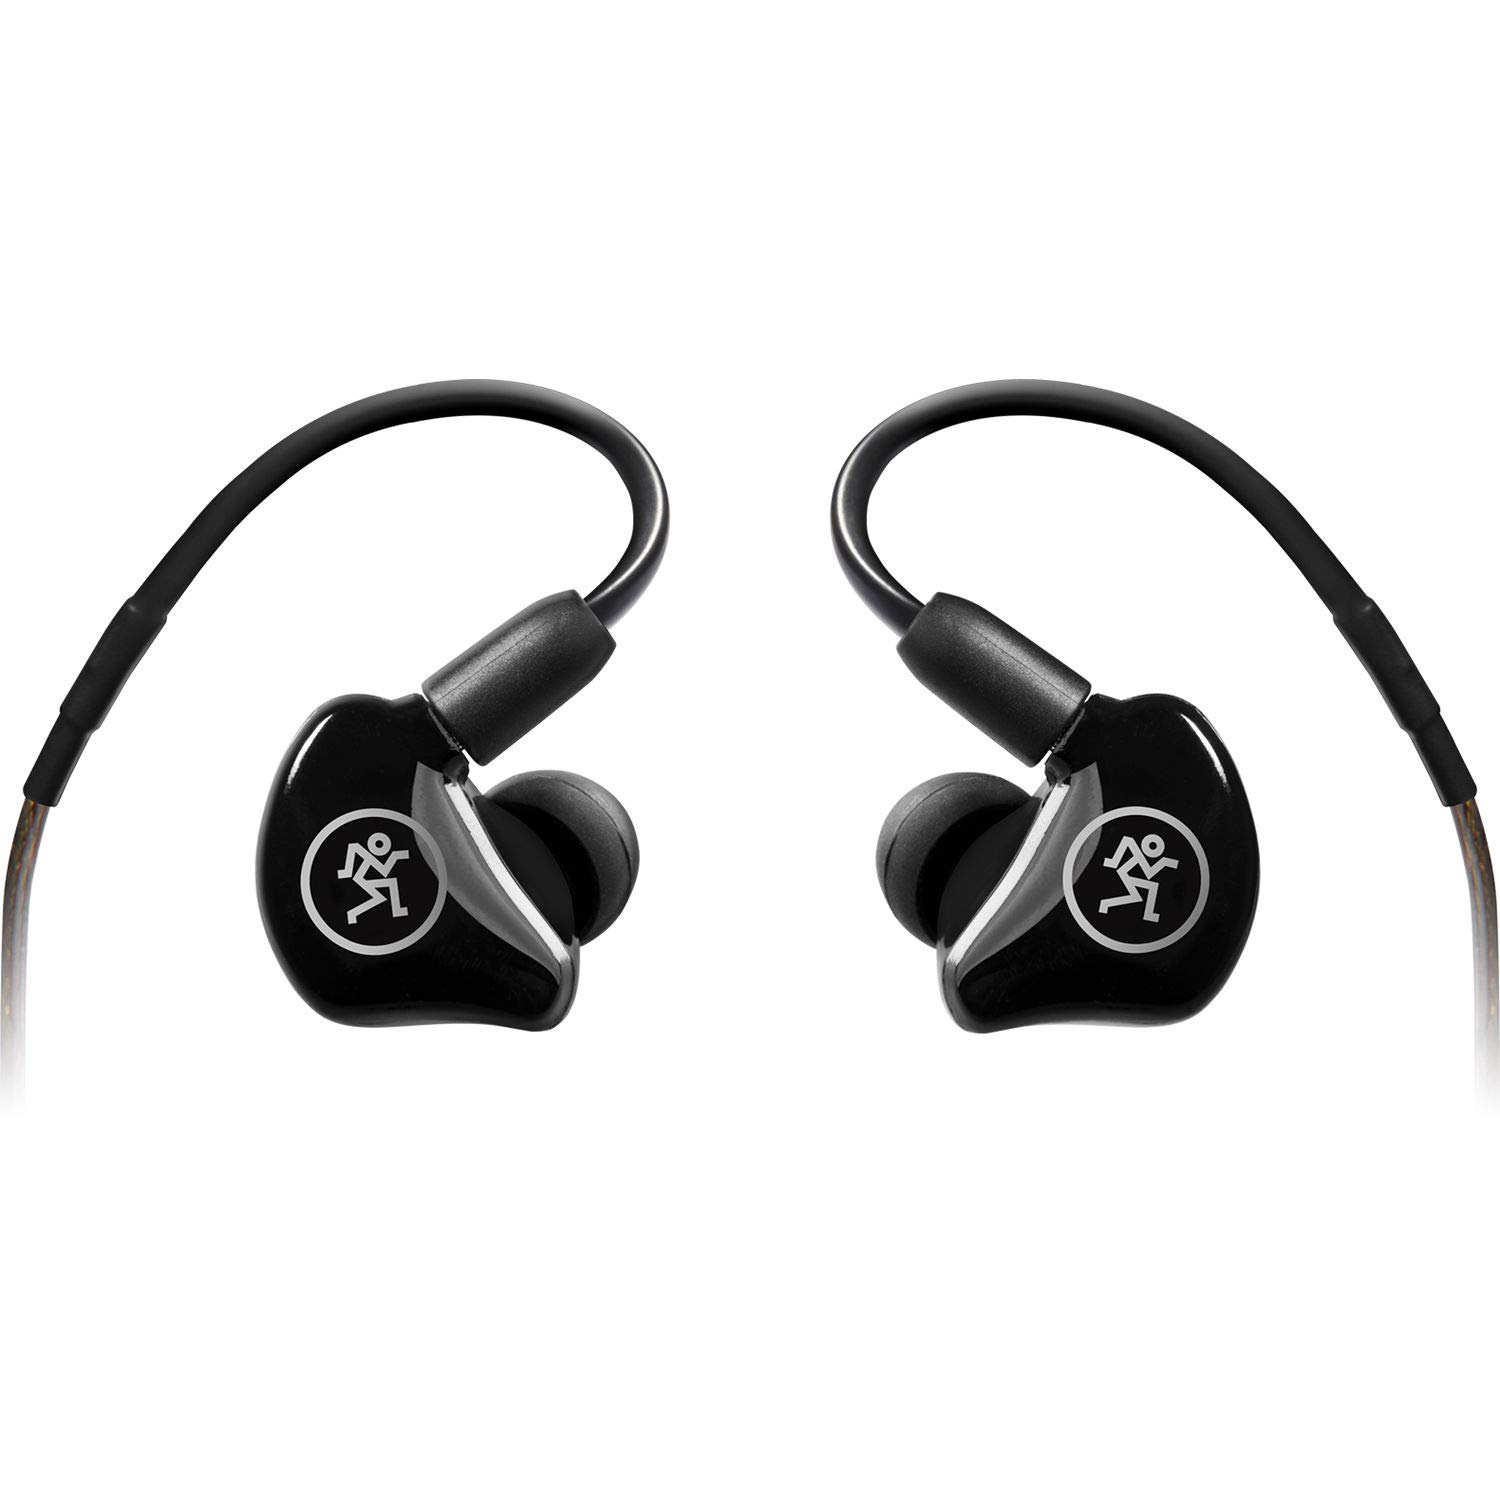 Mackie MP-220 Dual Dynamic Driver Professional In-Ear Monitors with 1 Year EverythingMusic Extended Warranty Free